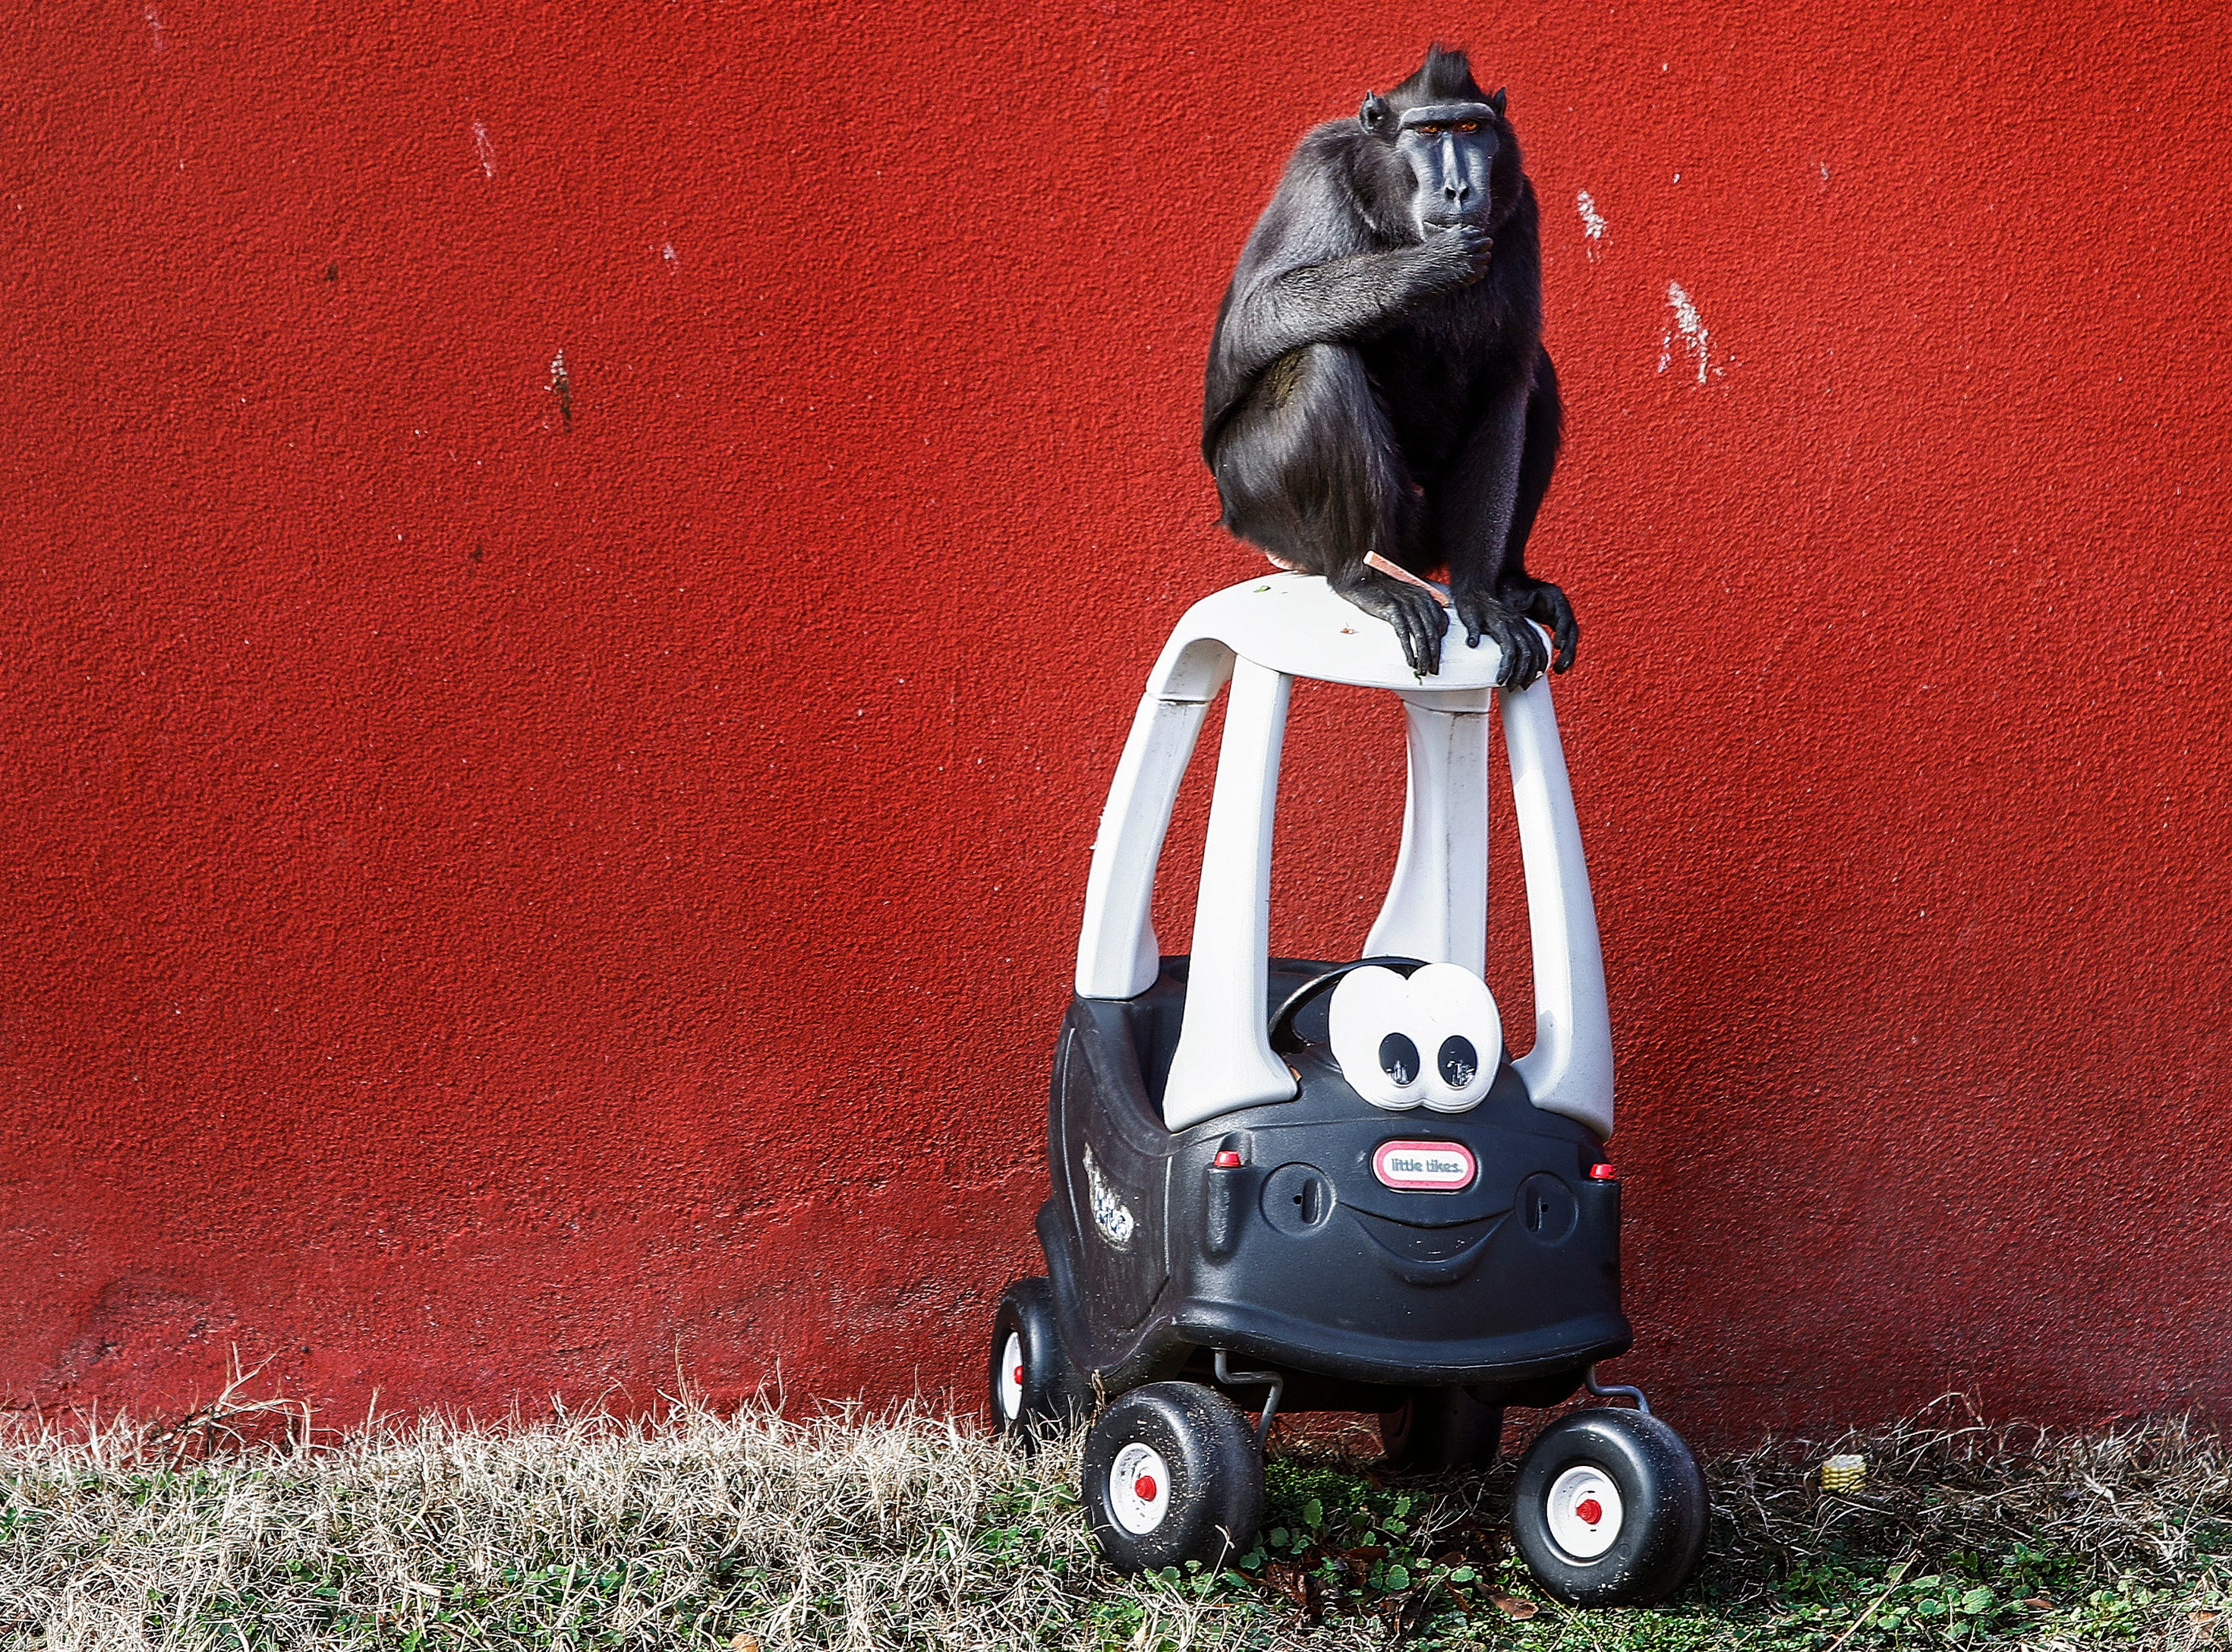 A Sulawesi Crested Black Macaque sits atop a donated toy car at the Memphis Zoo Friday morning. Courtney Janney, curator of large mammals at the zoo came up with a novel way to recycle children's toy be letting animals play with them from time to time.